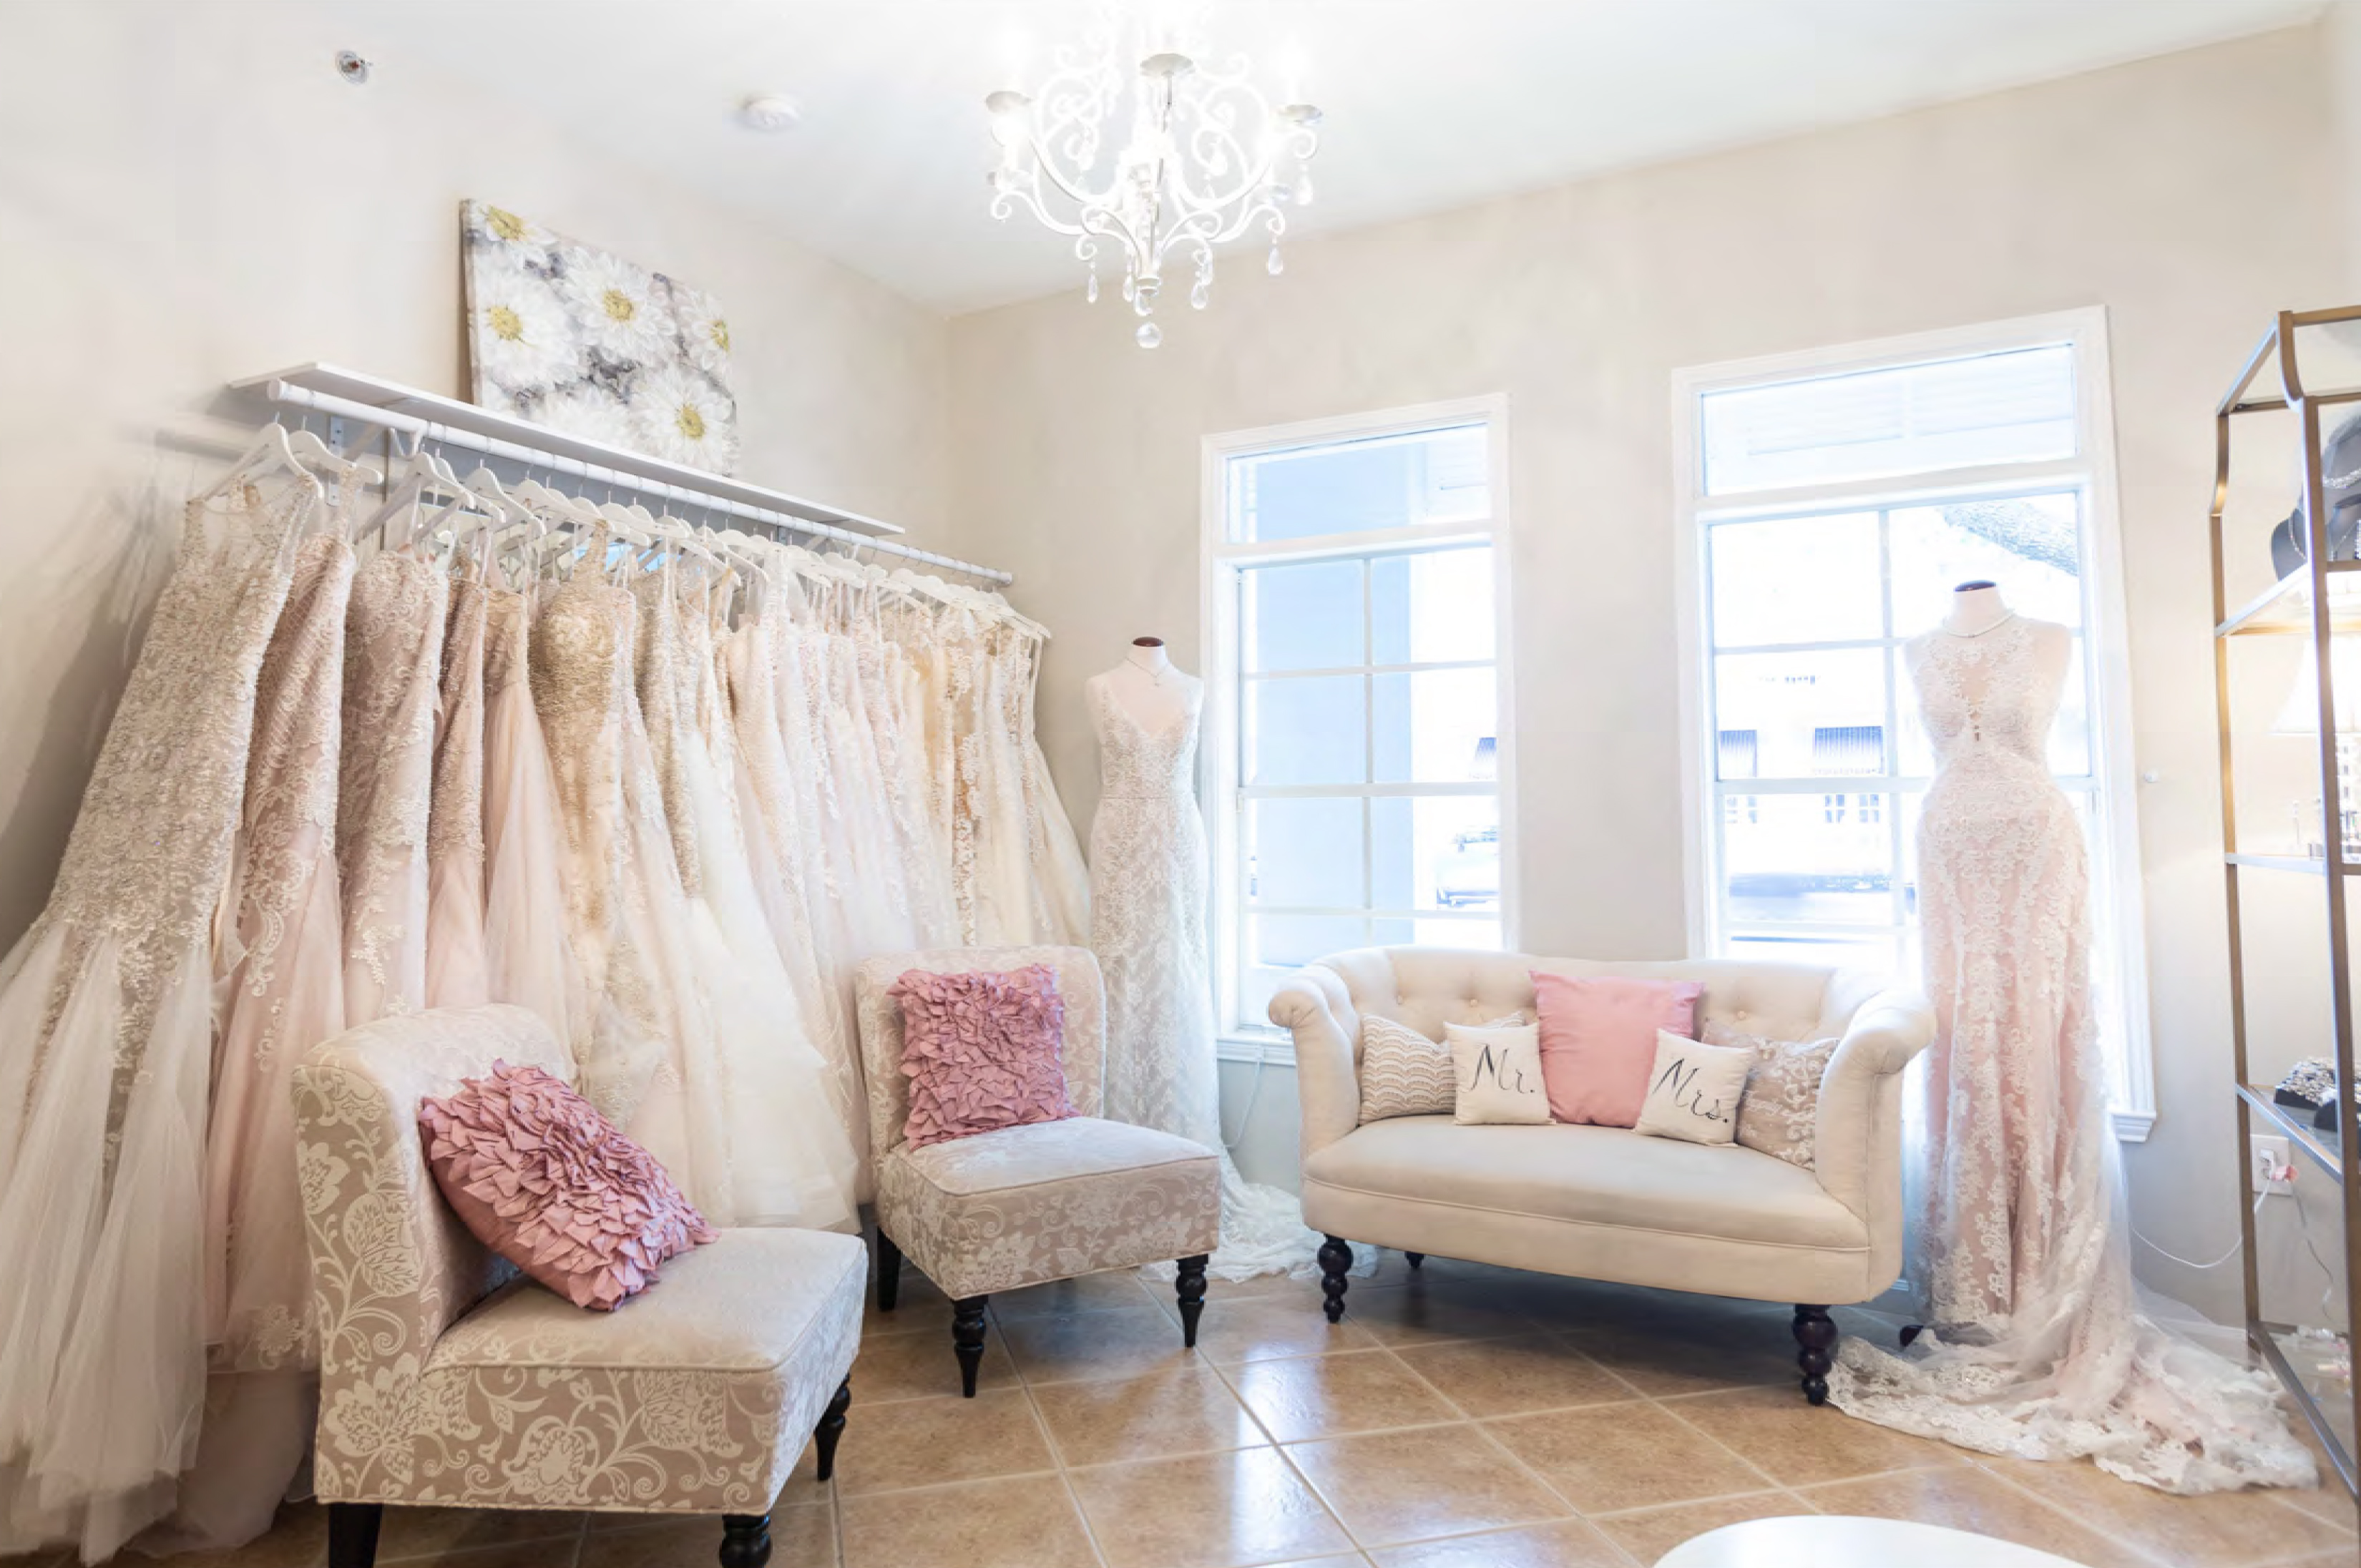 The Dressing Room Celebration an Orlando Bridal Gowns